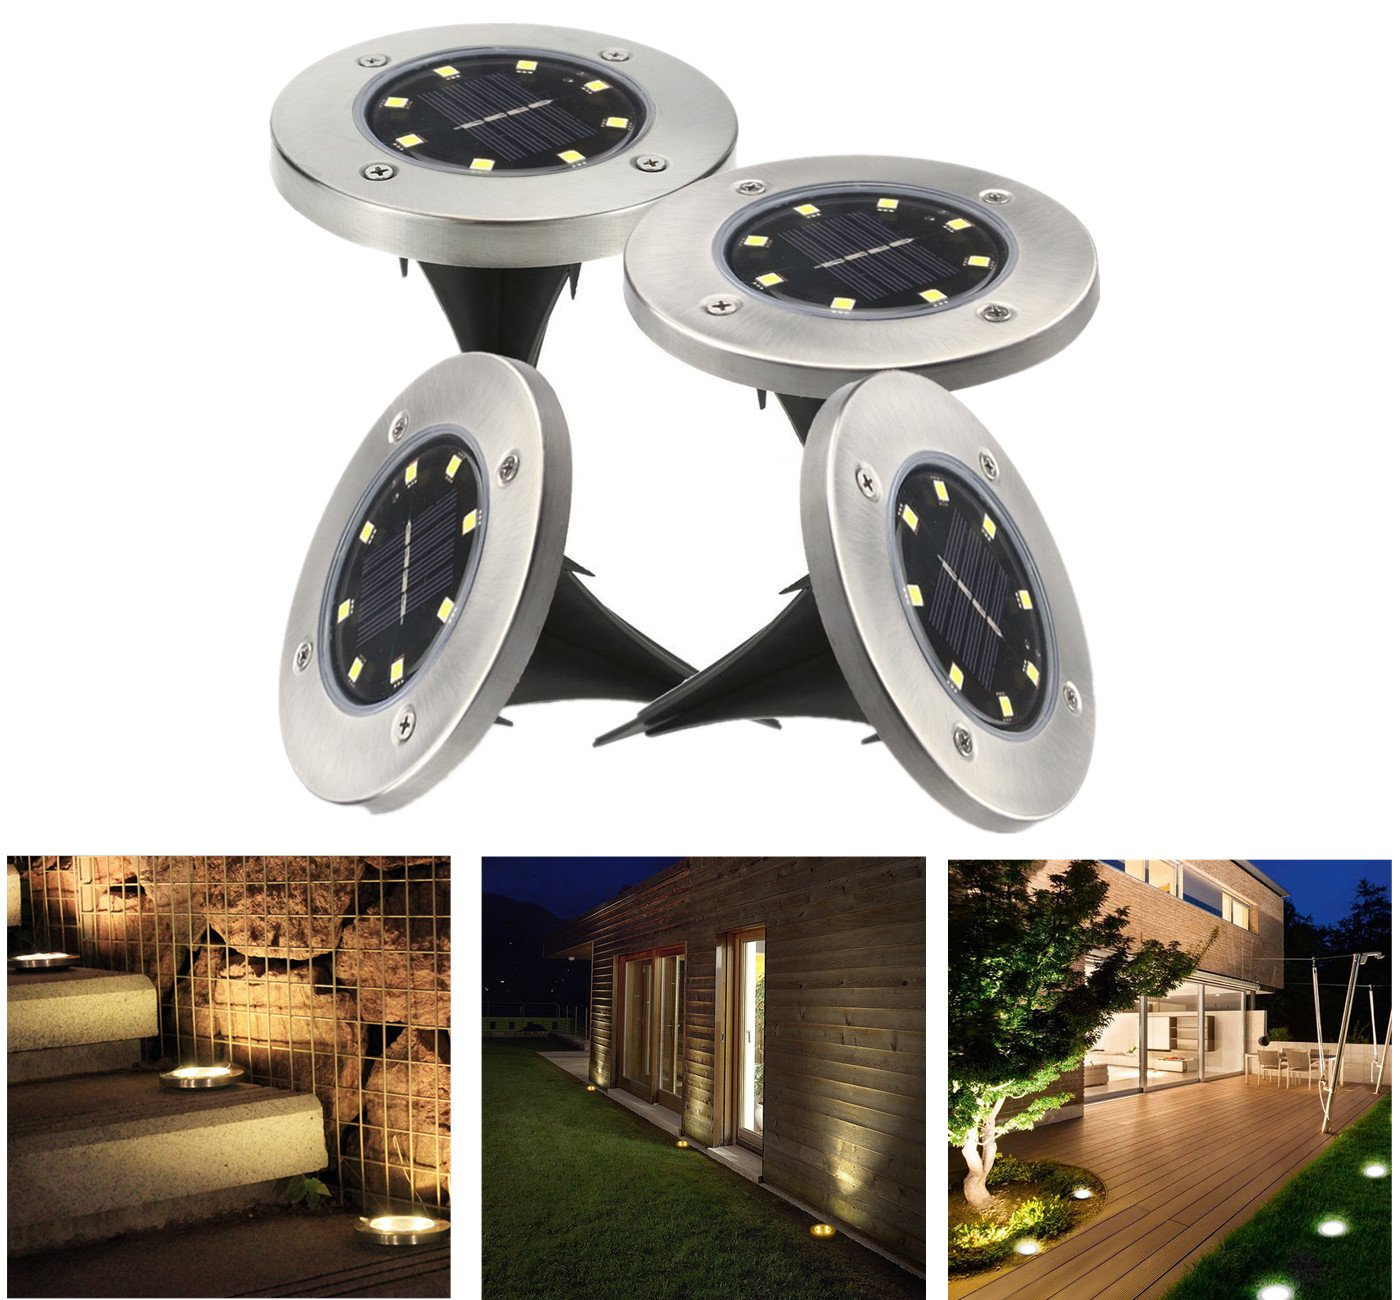 Solar Outdoor Ground Lights - Waterproof Stainless Steel Pathway Landscape lights For Outdoor& Garden, Pathway, Yard, Walk Way 8 LED Lights(16Pack, White)